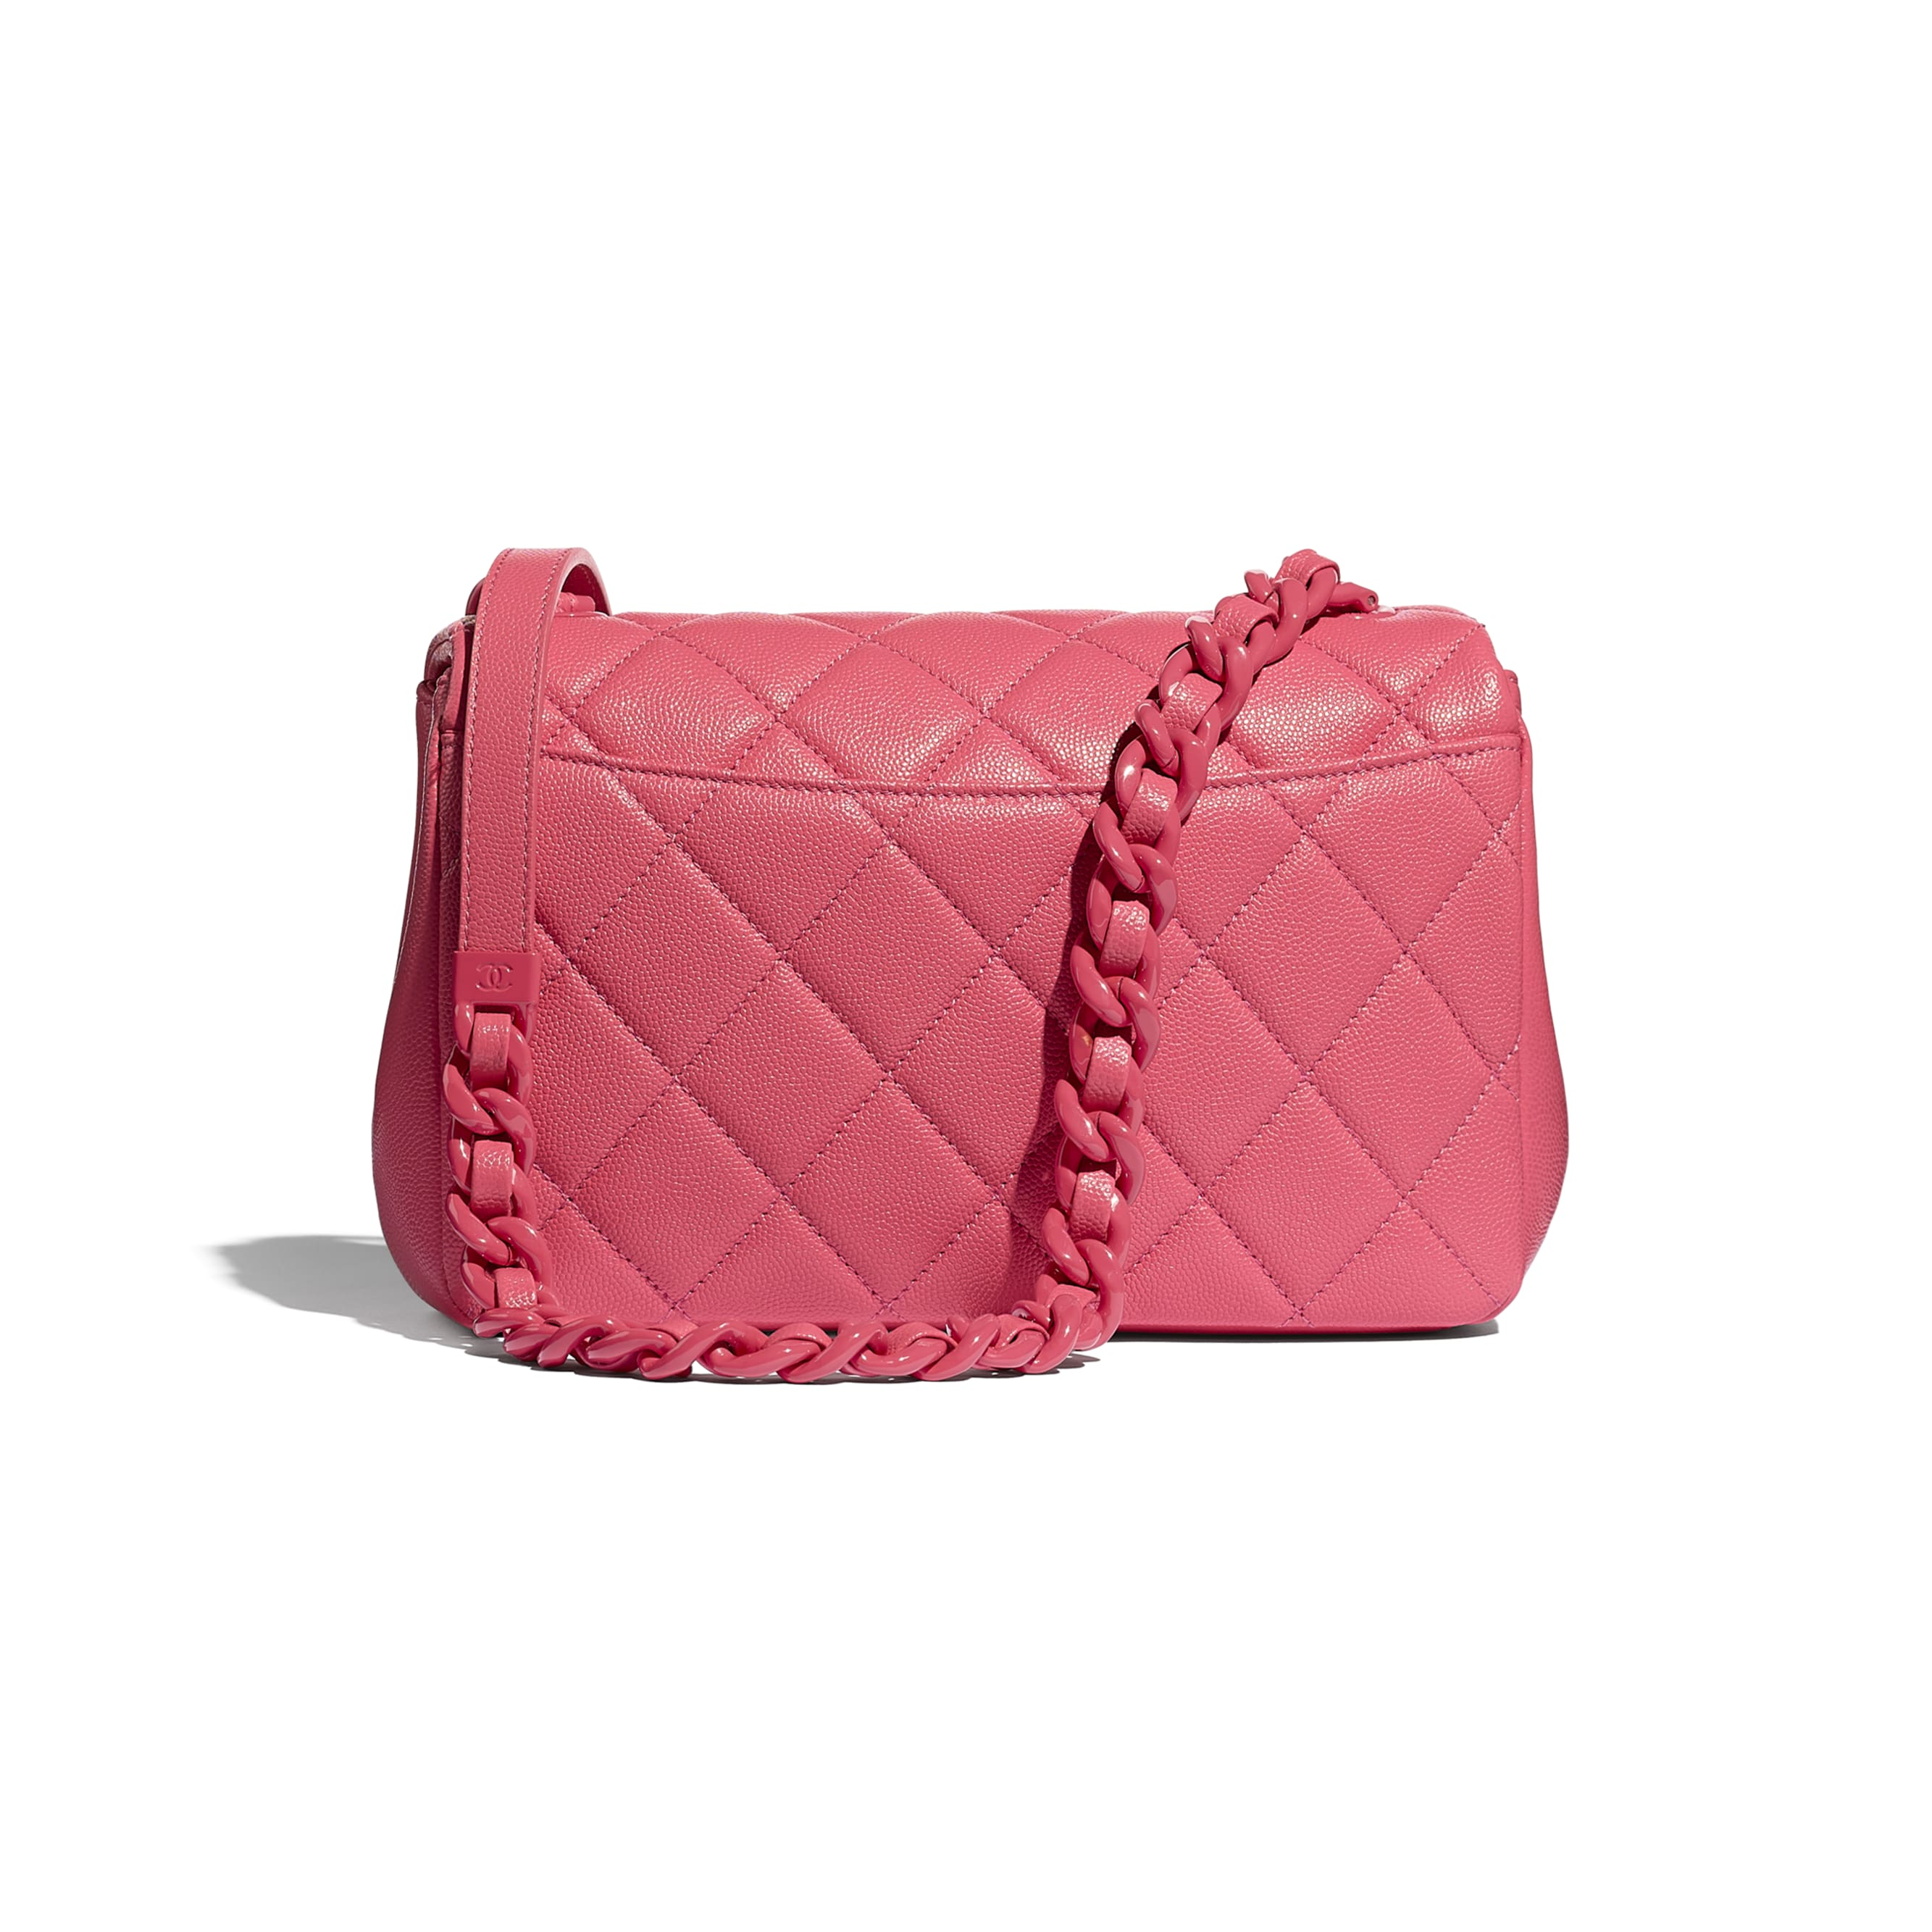 Flap Bag - Coral - Grained Calfskin & Lacquered Metal - CHANEL - Alternative view - see standard sized version